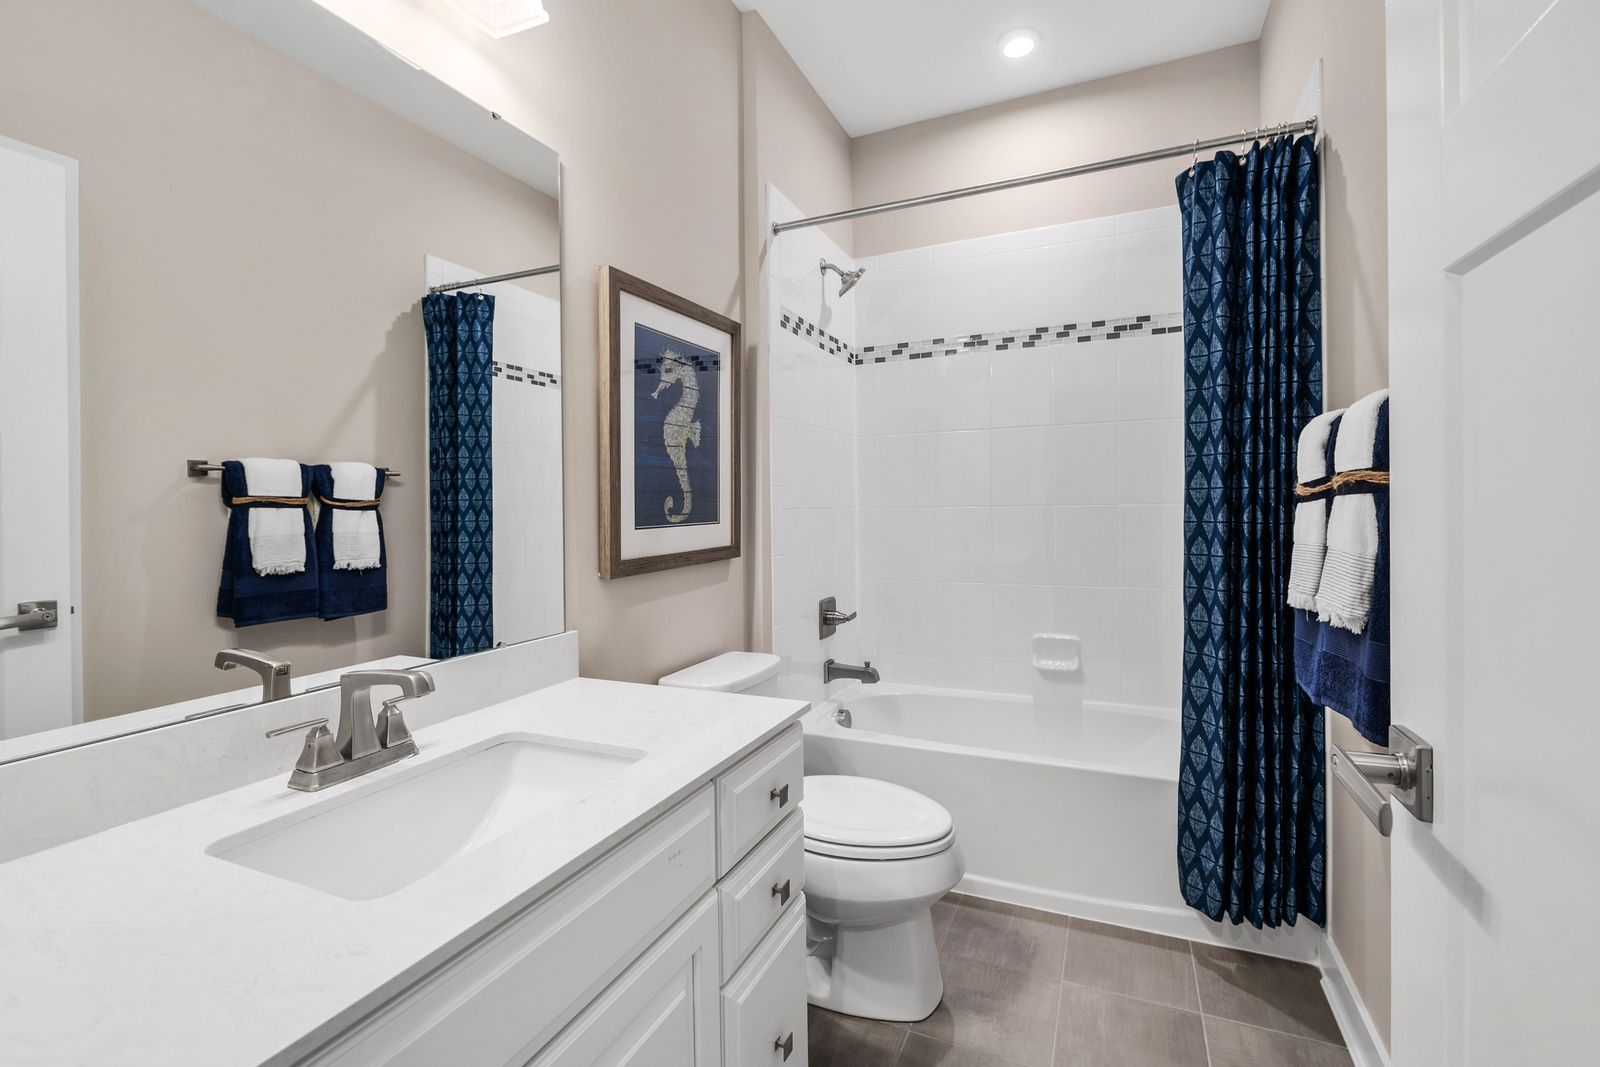 Bathroom featured in the Cumberland By Ryan Homes in Cleveland, OH